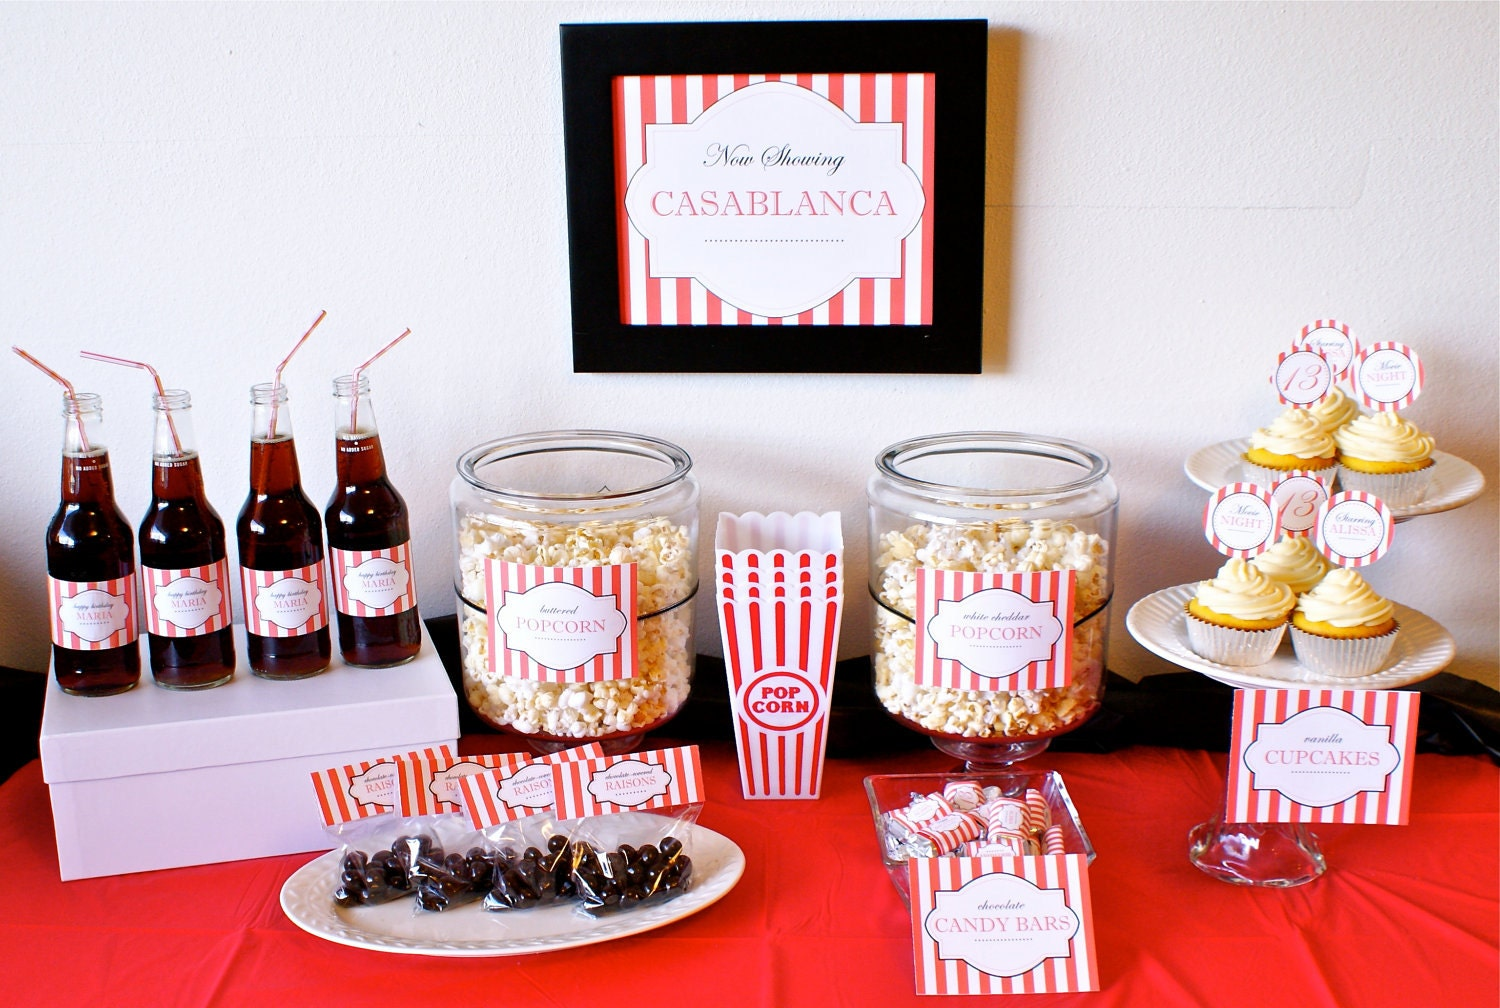 Google themes movies - 25 Best Images About Movie Party Food Ideas Recipes On Pinterest Celebrations Movie Cakes And Movie Night Party